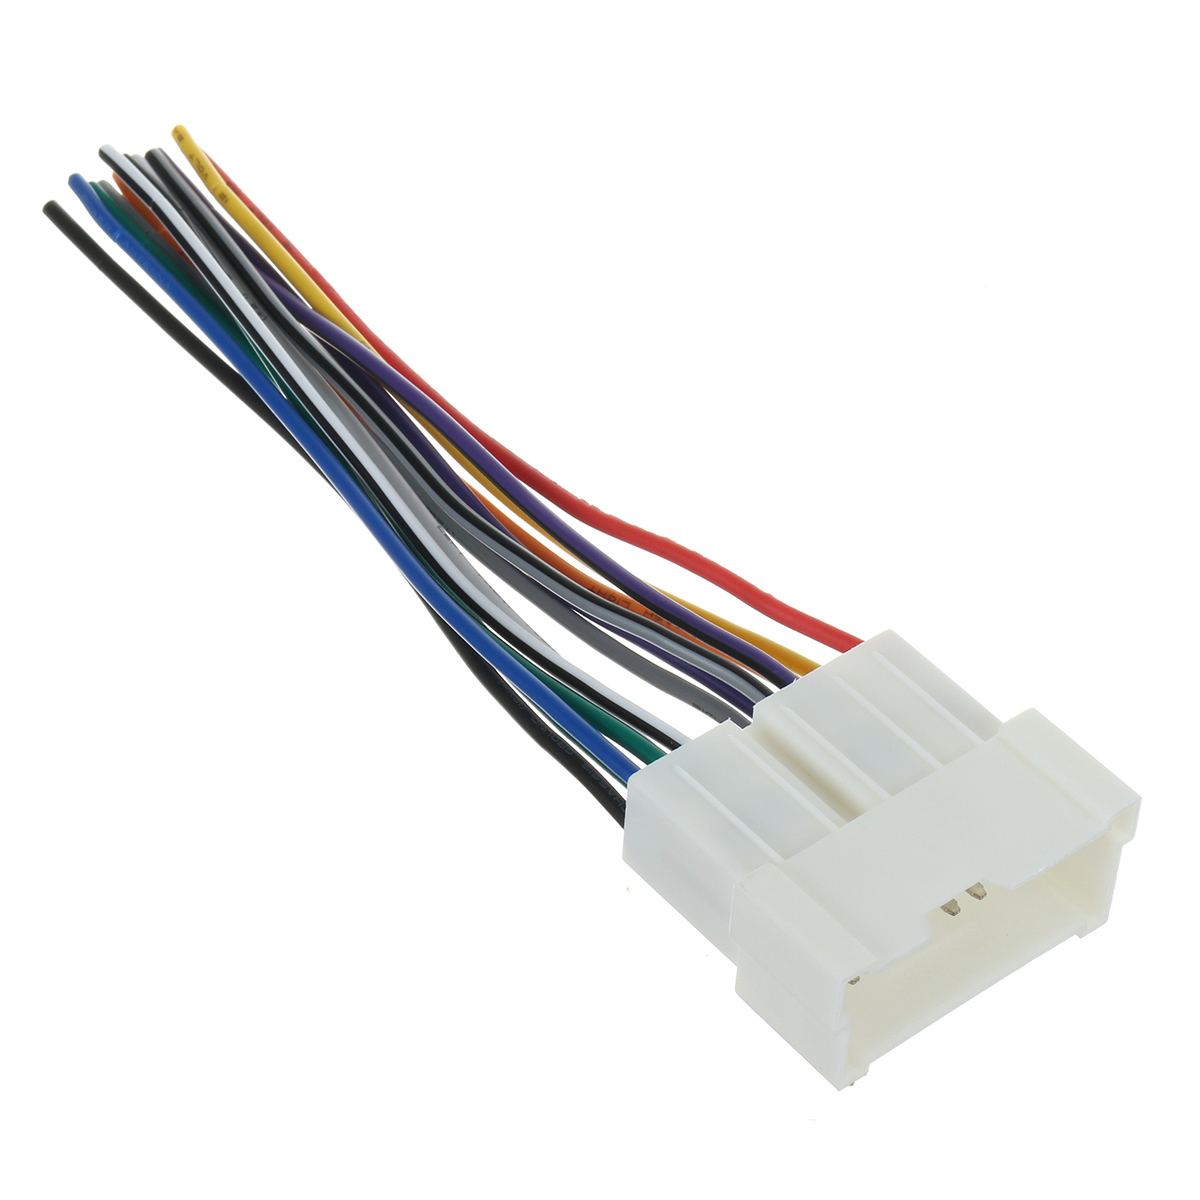 hight resolution of cd dvd player wiring harness plug cable adapter connector sale ford wire harness plugs cd dvd